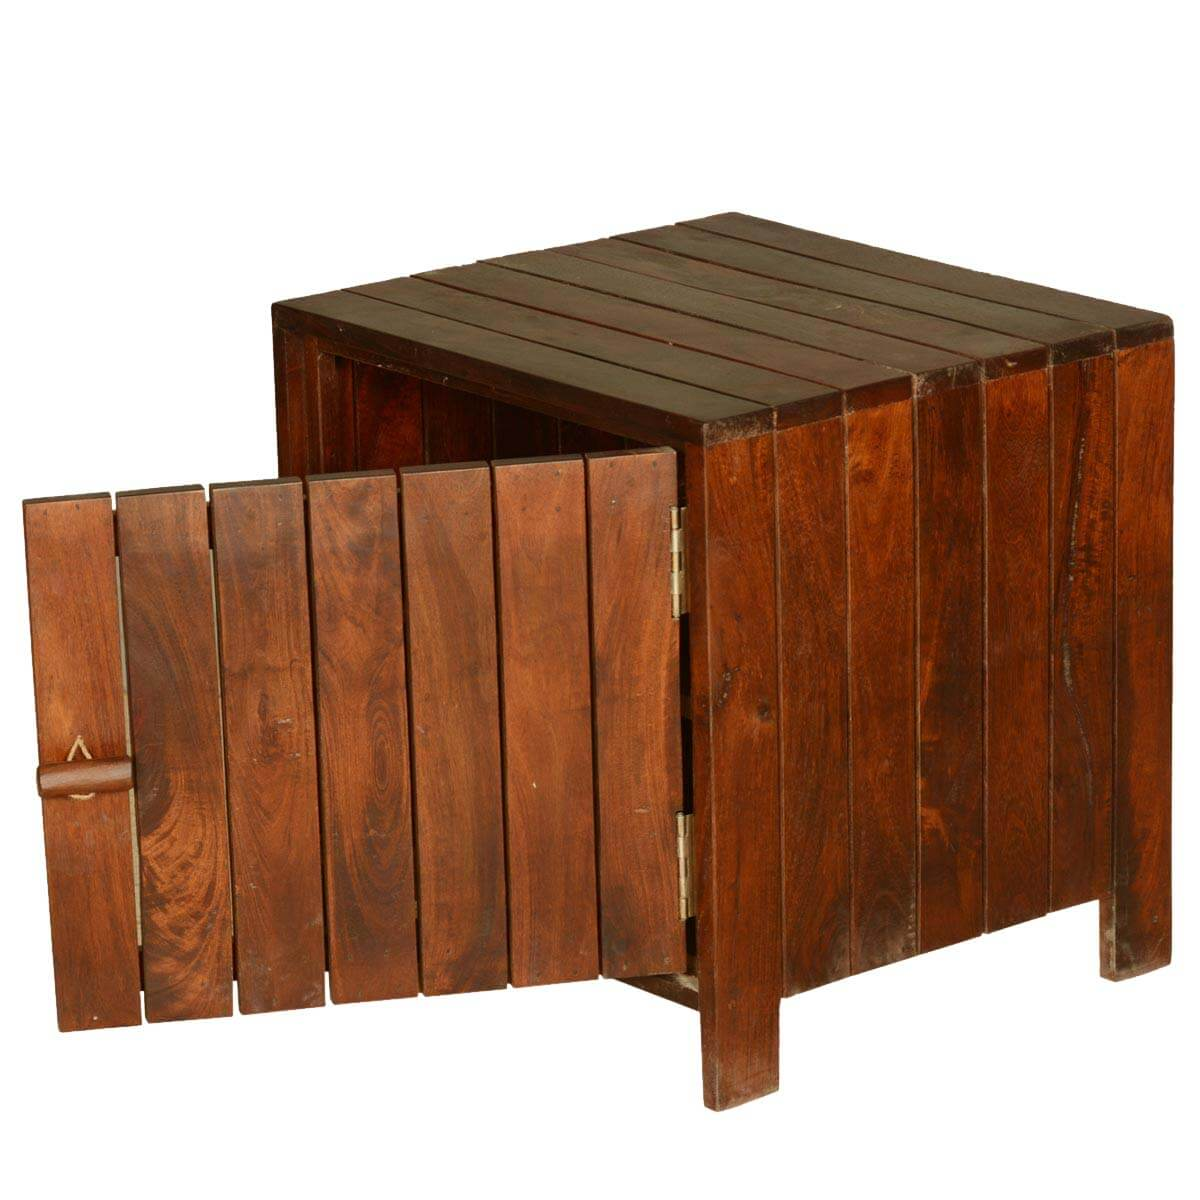 Wood Cube End Table Zest Contemporary Standing Cube Solid Teak Wood End Table